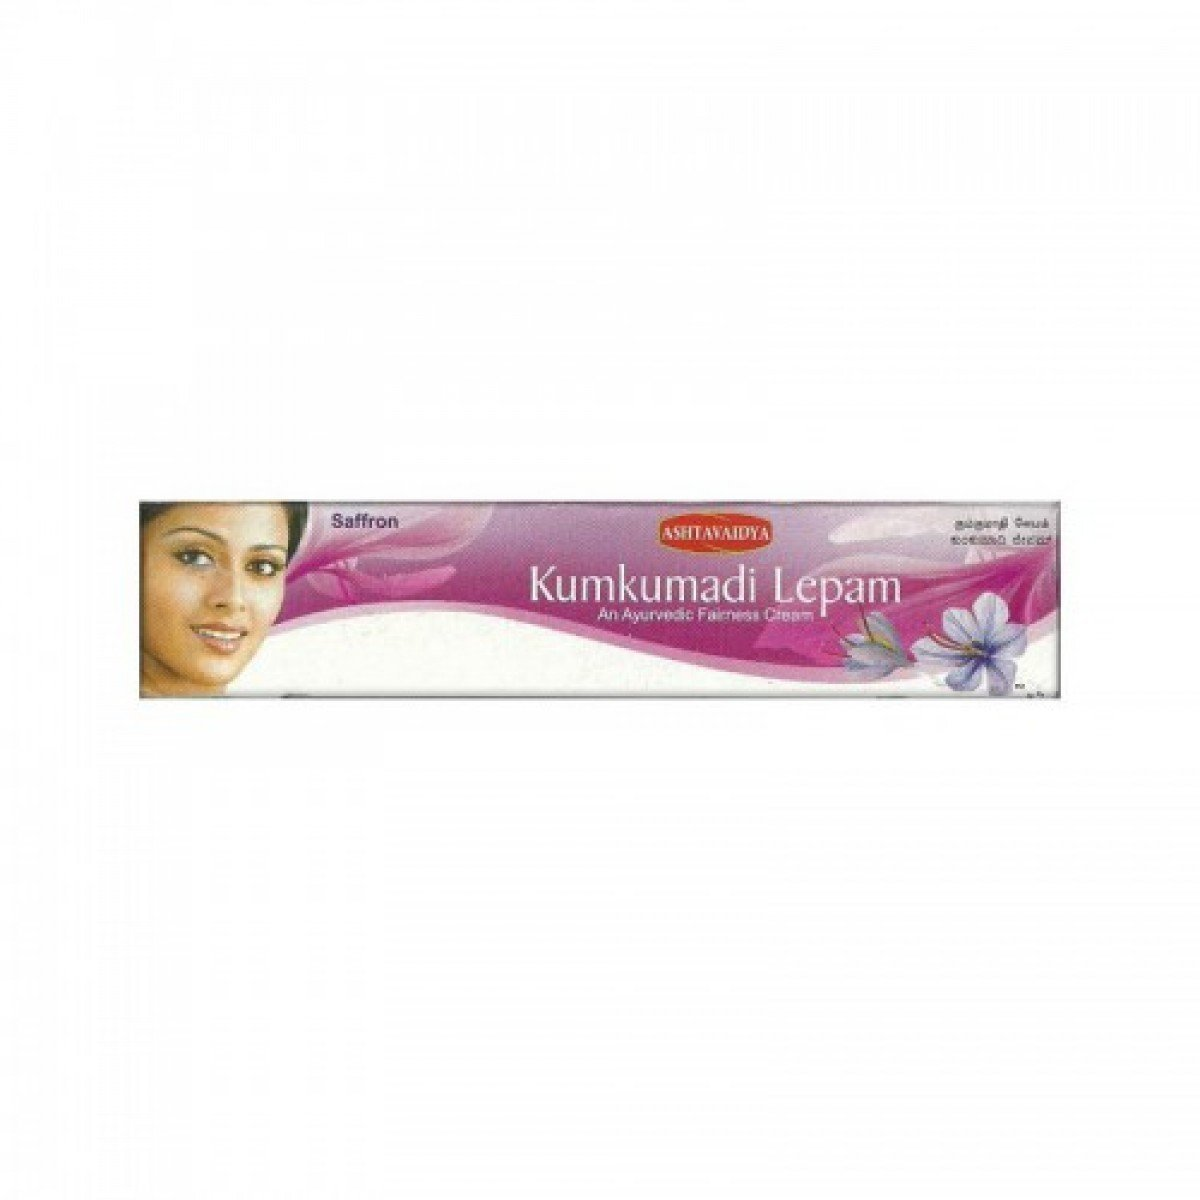 KUMKUMADI LEPAM NATURAL AYURVEDIC SAFFRON SKIN FAIRNESS CREAM - 2 Packs offer